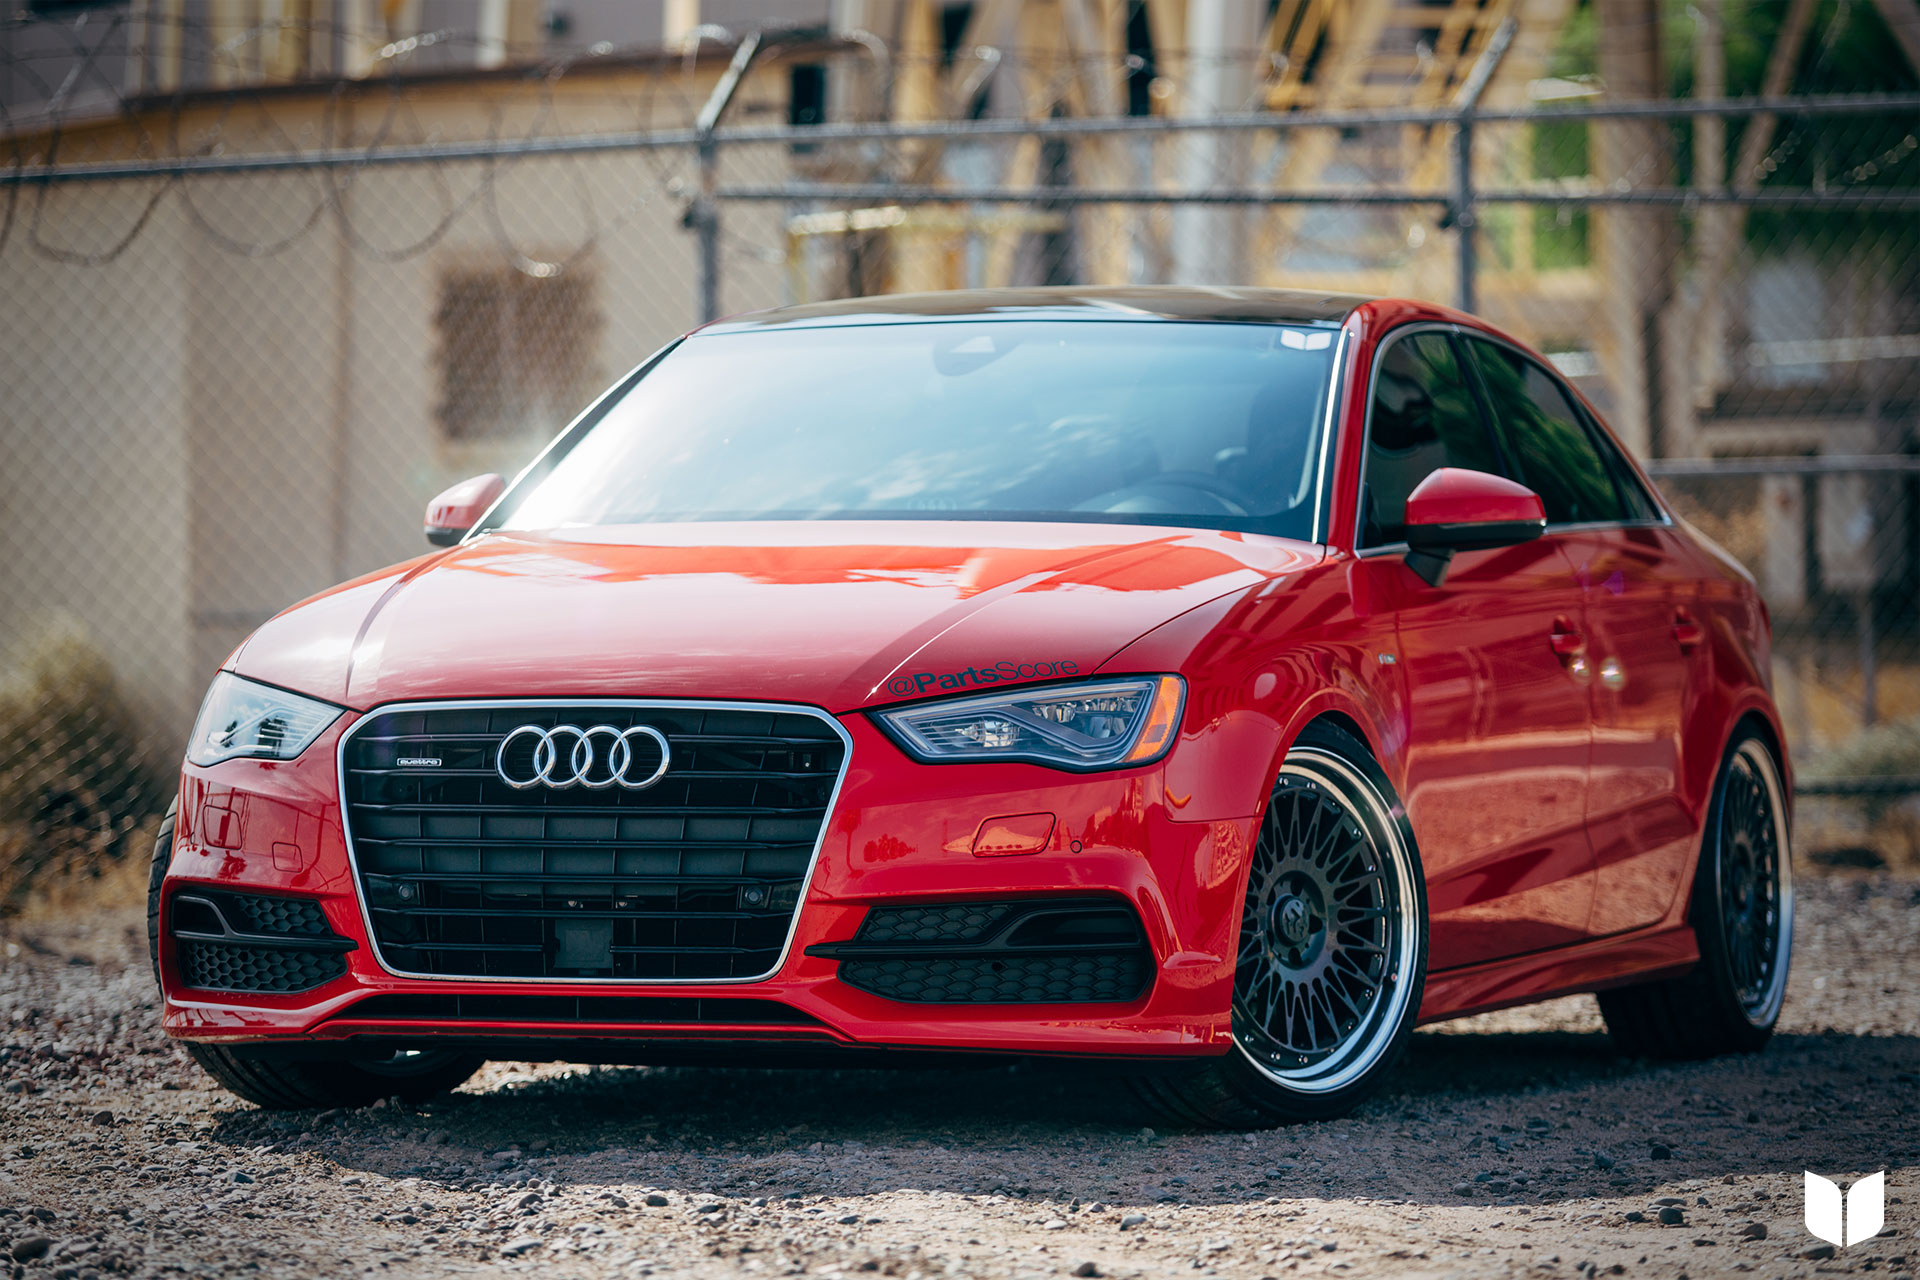 2015 Audi 8V A3 quattro Sport fifteen52 Michelin Parts Score Scottsdale